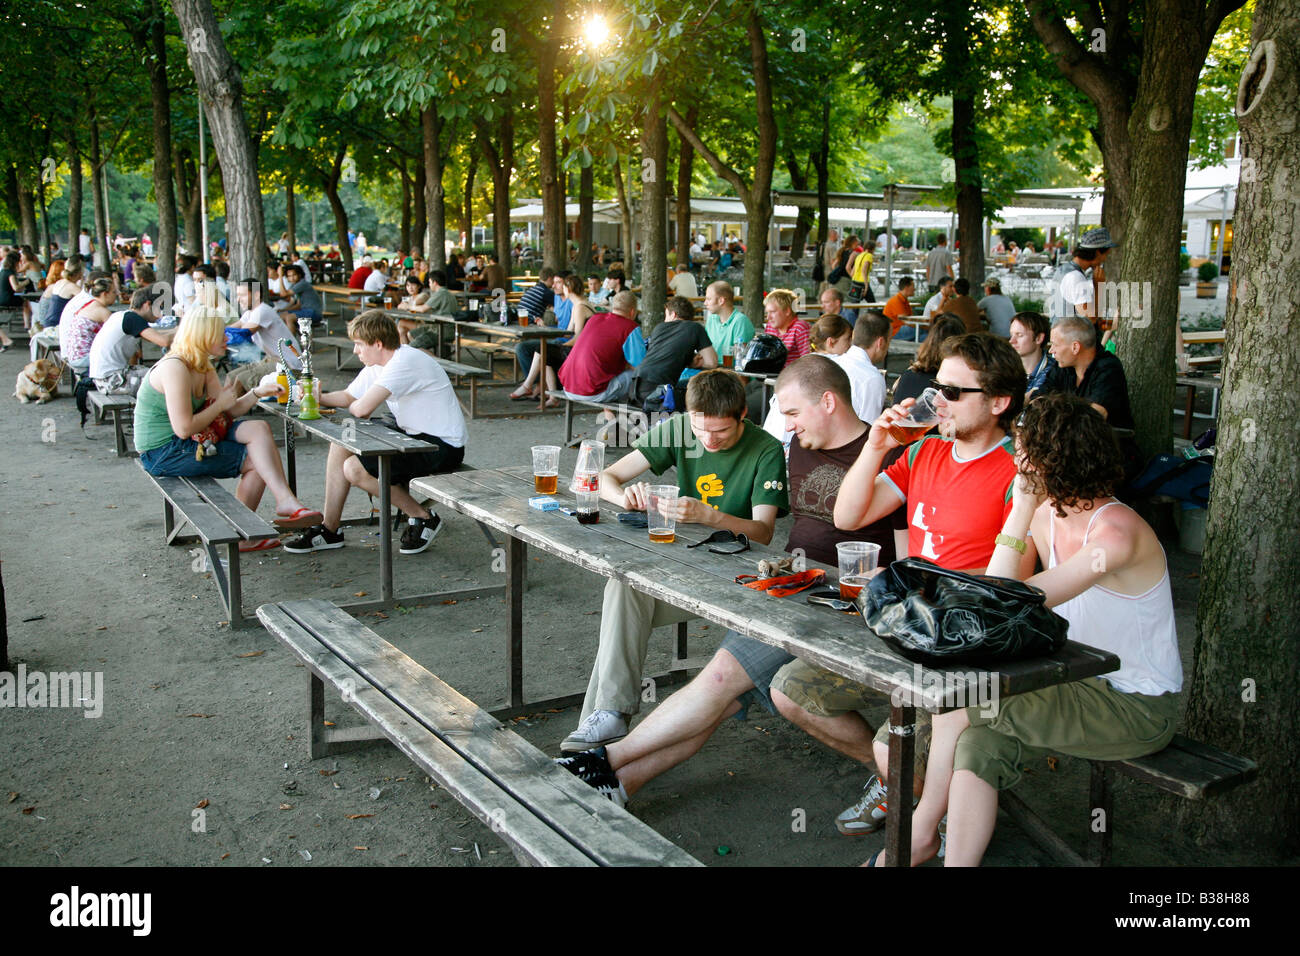 Aug 2008 - People sitting at a beer garden in Letna Park Prague Czech Republic Stock Photo